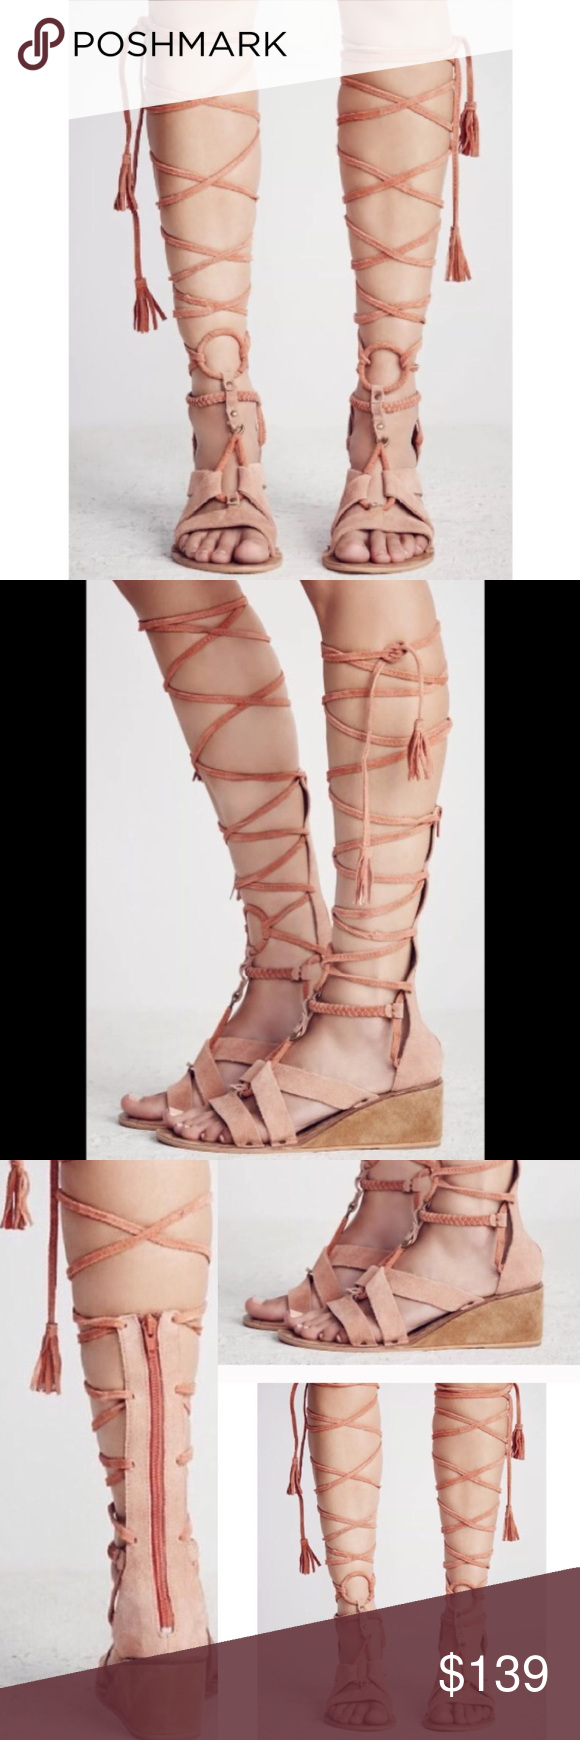 BRAND NEW! 🌟 FREE PEOPLE LACE GLADIATOR TASSEL FREE PEOPLE DOES IT AGAIN!  🎀 Brand new without tags! 🎀 Distressed look to them-true to Free People designing!  ABSOLUTELY GORGEOUS detailing!  💗💗💗 These sandals feature a small wedge, leather, suede material, and a gladiator lace-up aesthetic with tassels!  SO EDGY & CHIC!  Great 🎁 idea as well!  Get yours while they last!  I have limited quantities.  ONLY: 2 pairs of size 38 and 1 pair in a size 39.  Please ensure your sizing in this…